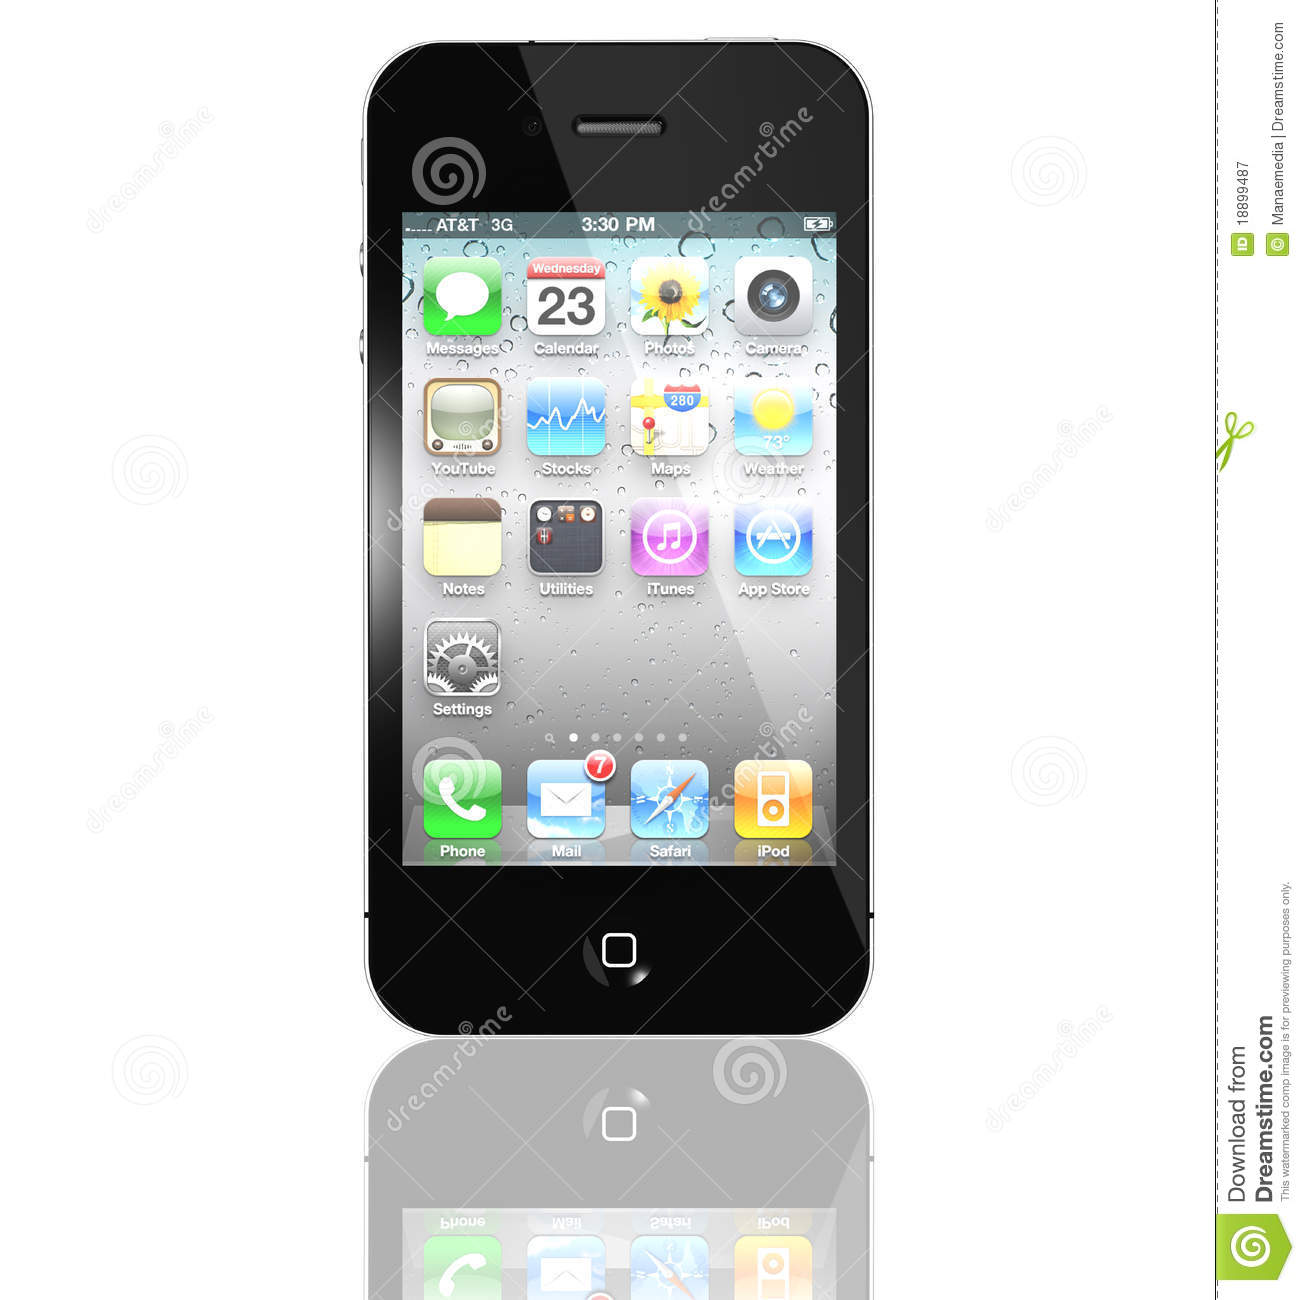 New Apple iPhone 4S with icons inside